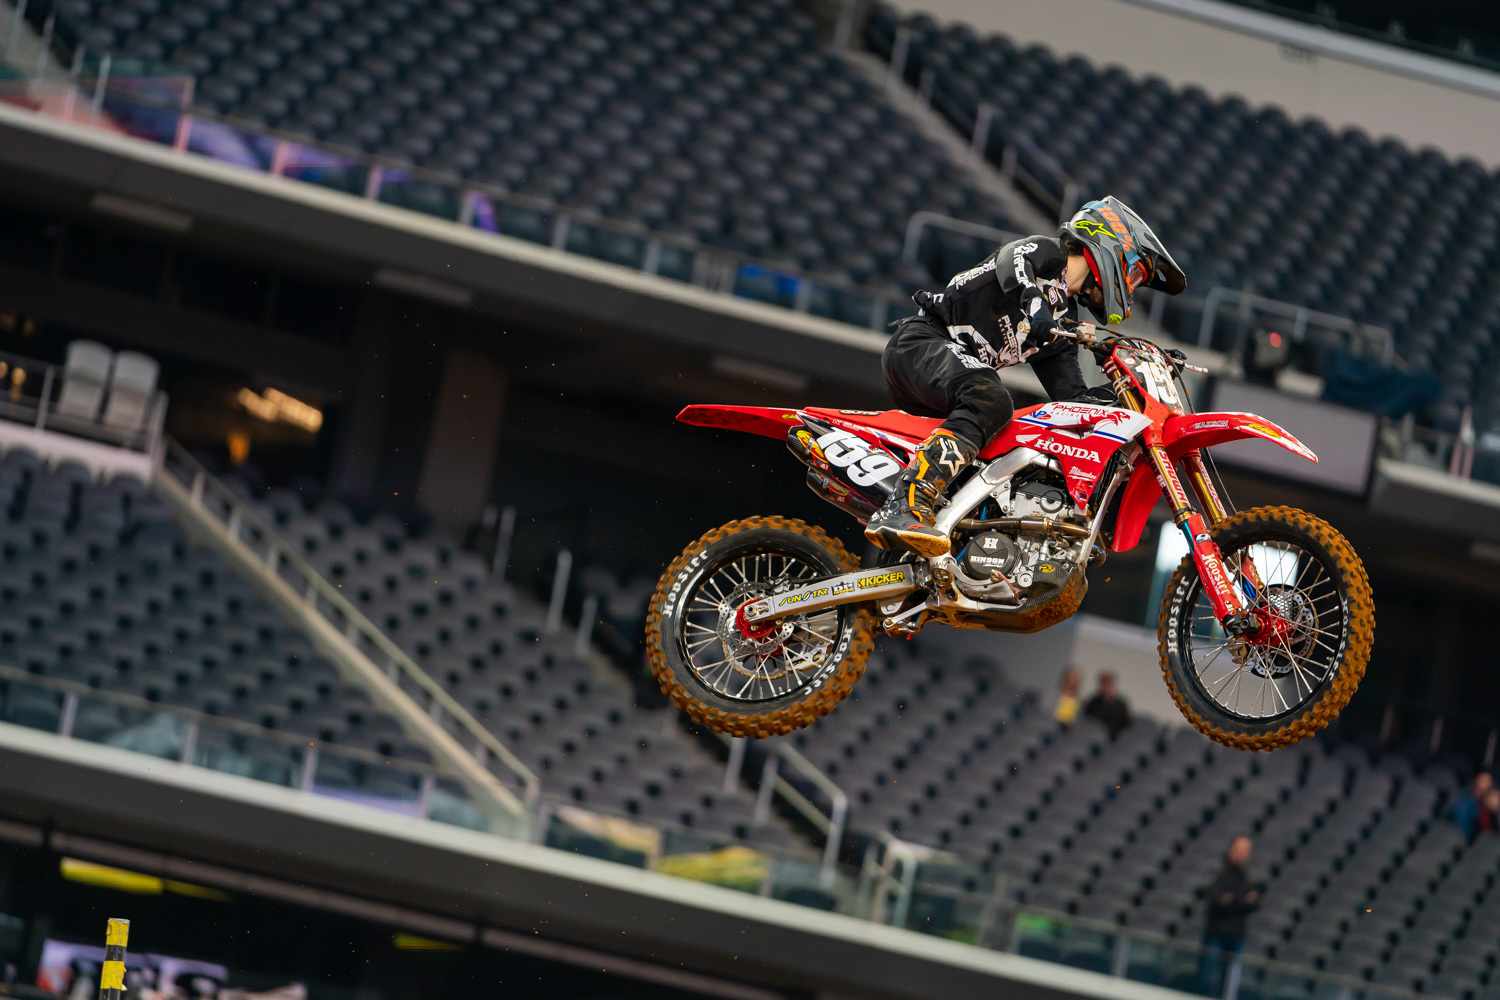 2020-ARLINGTON-SUPERCROSS_KICKSTART_0018